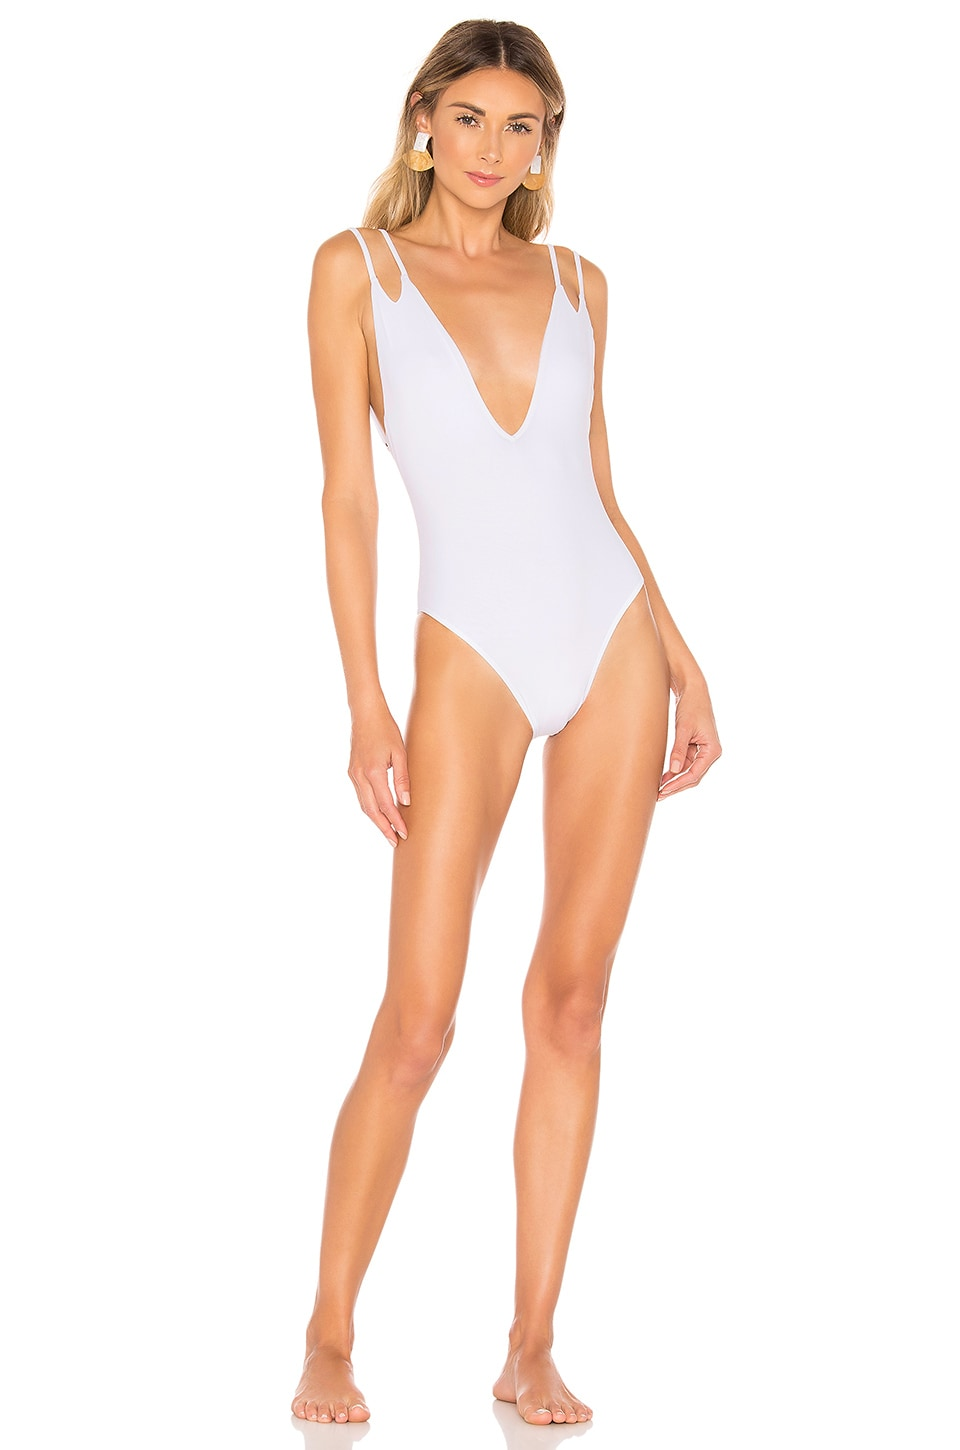 ELLEJAY X REVOLVE Alana One Piece in White